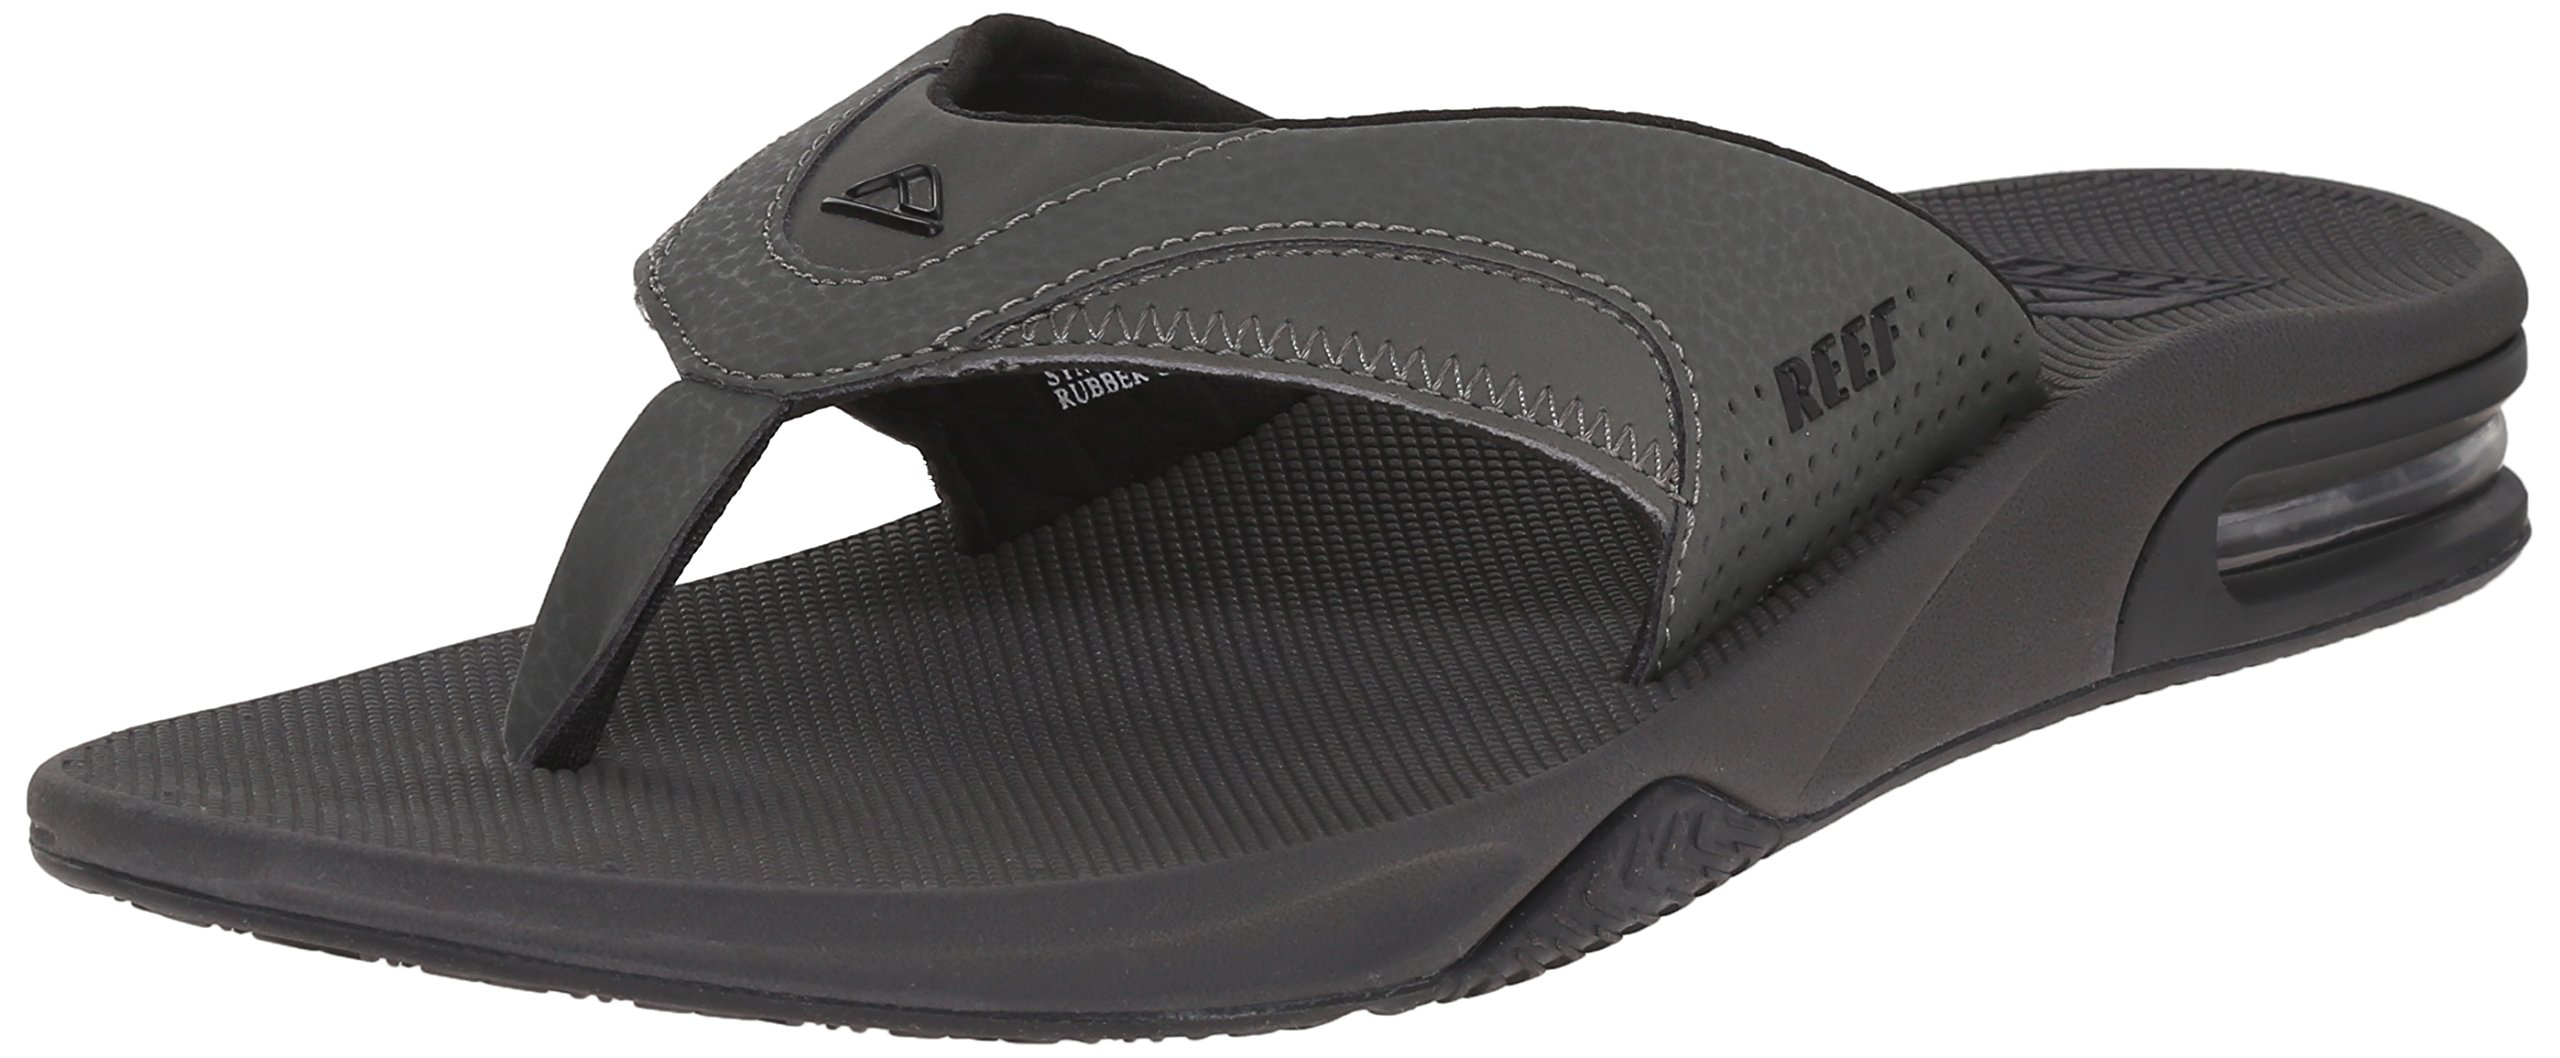 Reef Men's Fanning Flip Flop, Grey/Black, 17 D-Medium